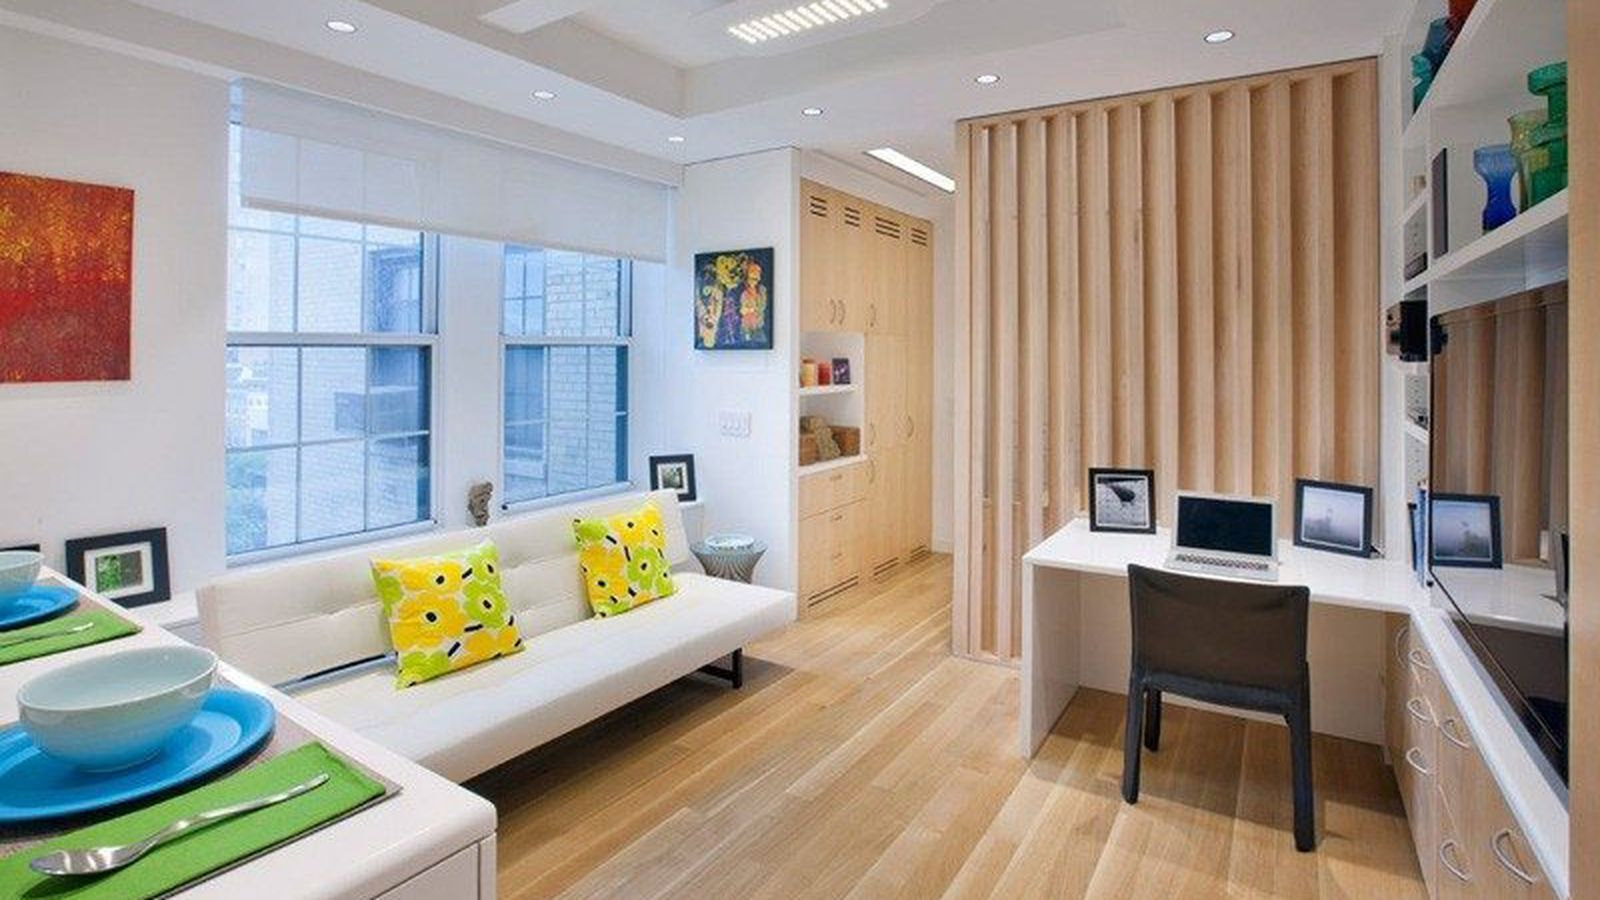 Apt Designs How To Fit 5 Rooms In A 340 Square Foot Nyc Apartment